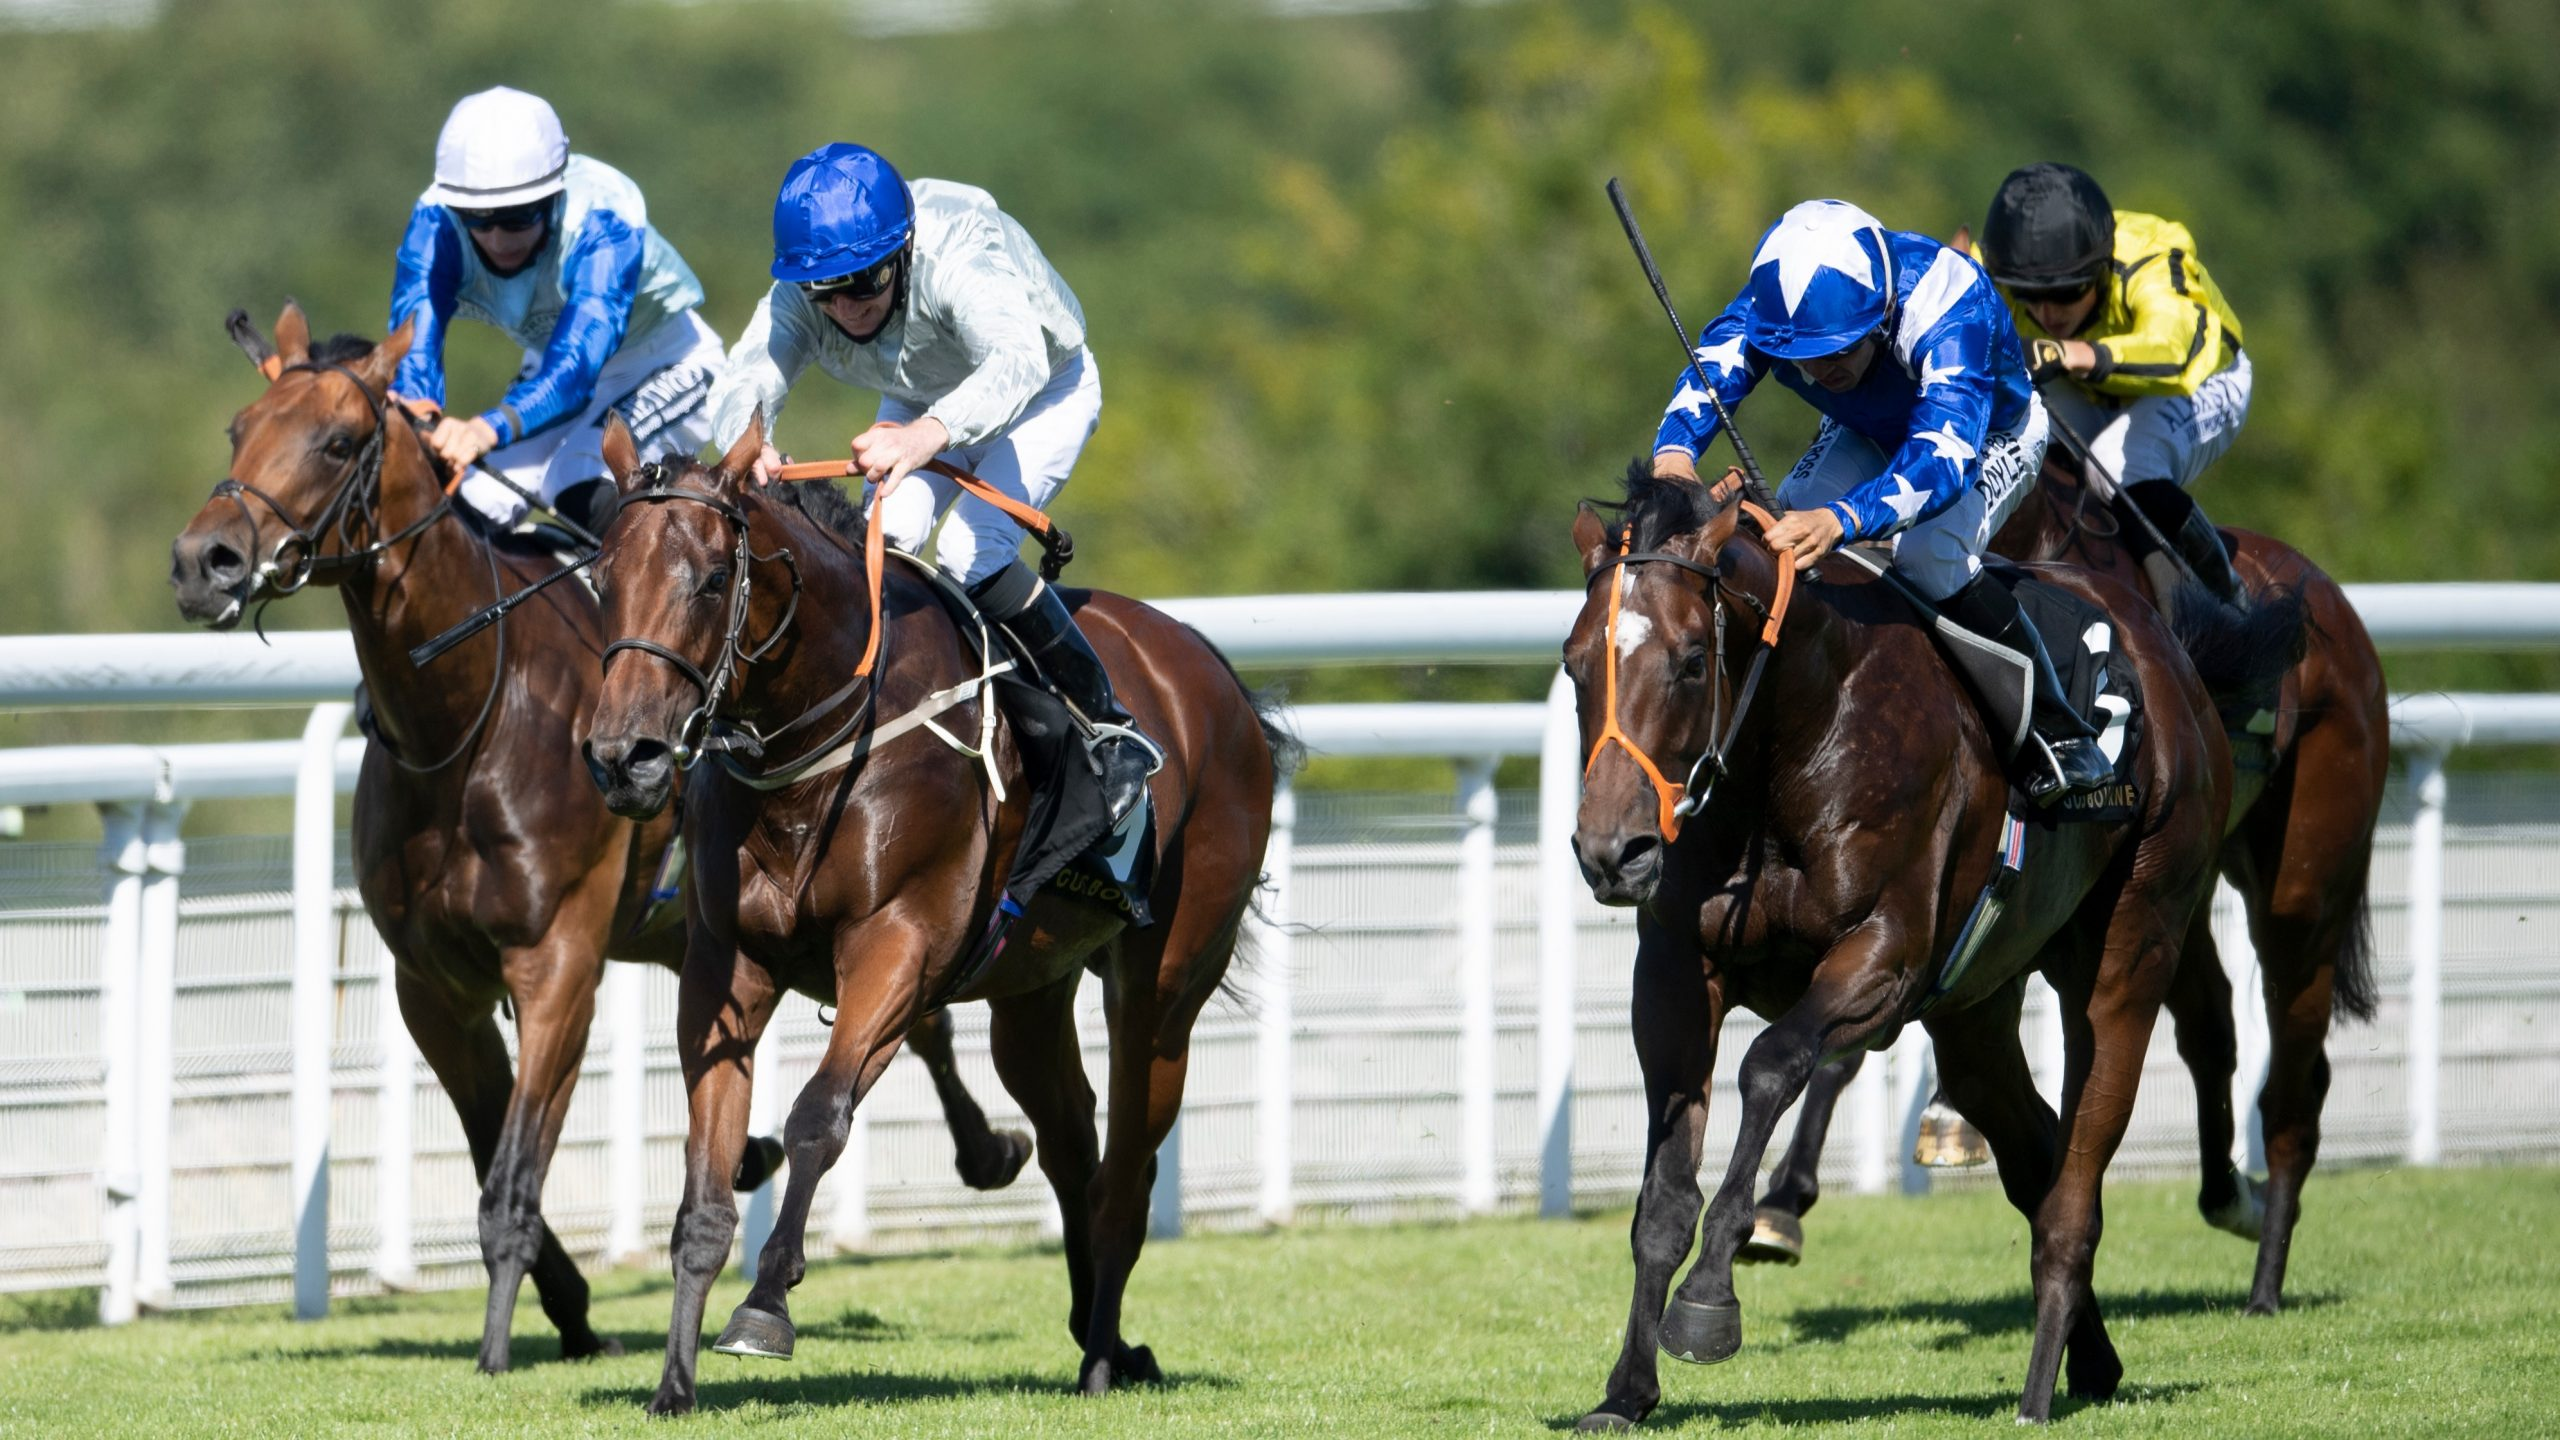 Mark Of The Man Gets Up To Win The Gusbourne Nursery Handicap photo